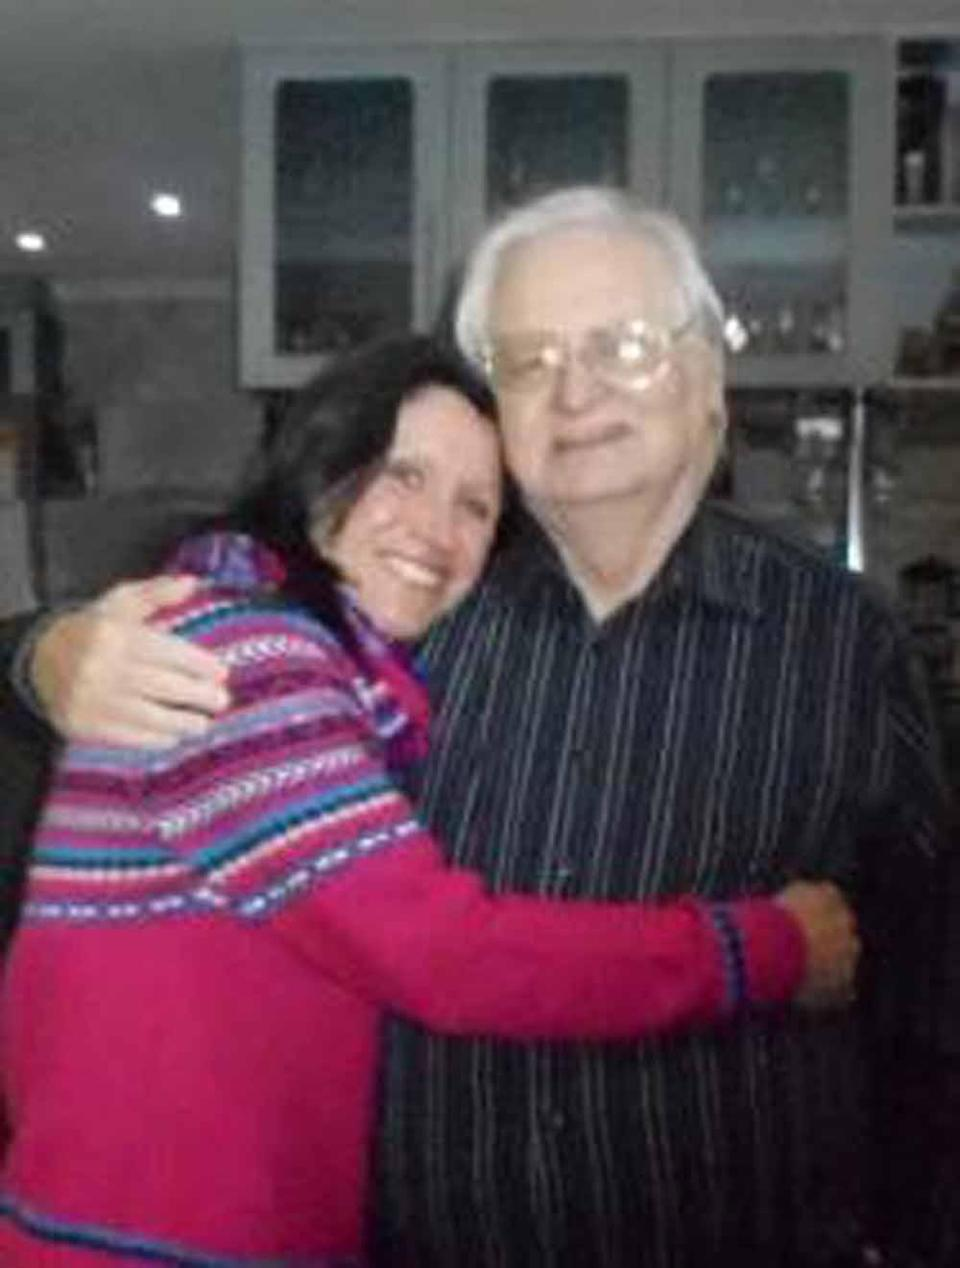 Yvonne pictured here with her dad, Alan, was completely broken when he passed away in September 2019 (Collect/PA Real Life).